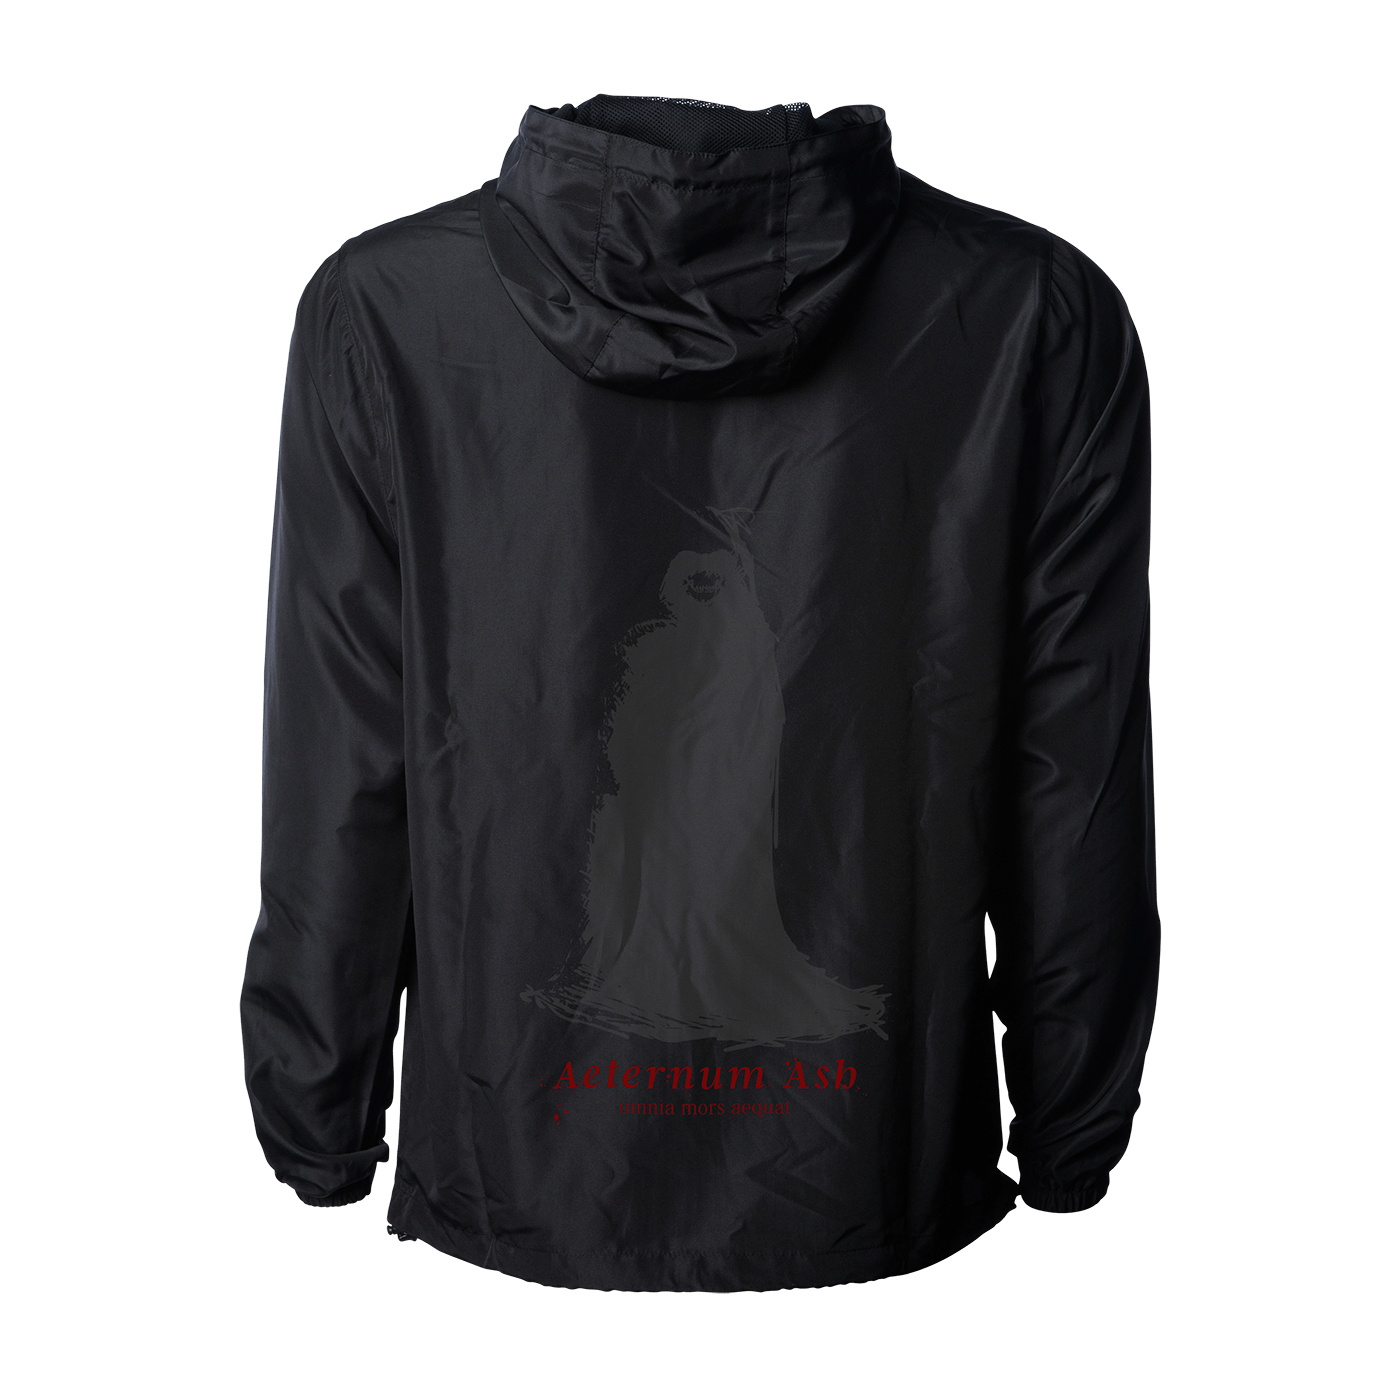 aeternum ash death makes all things equal windbreaker black